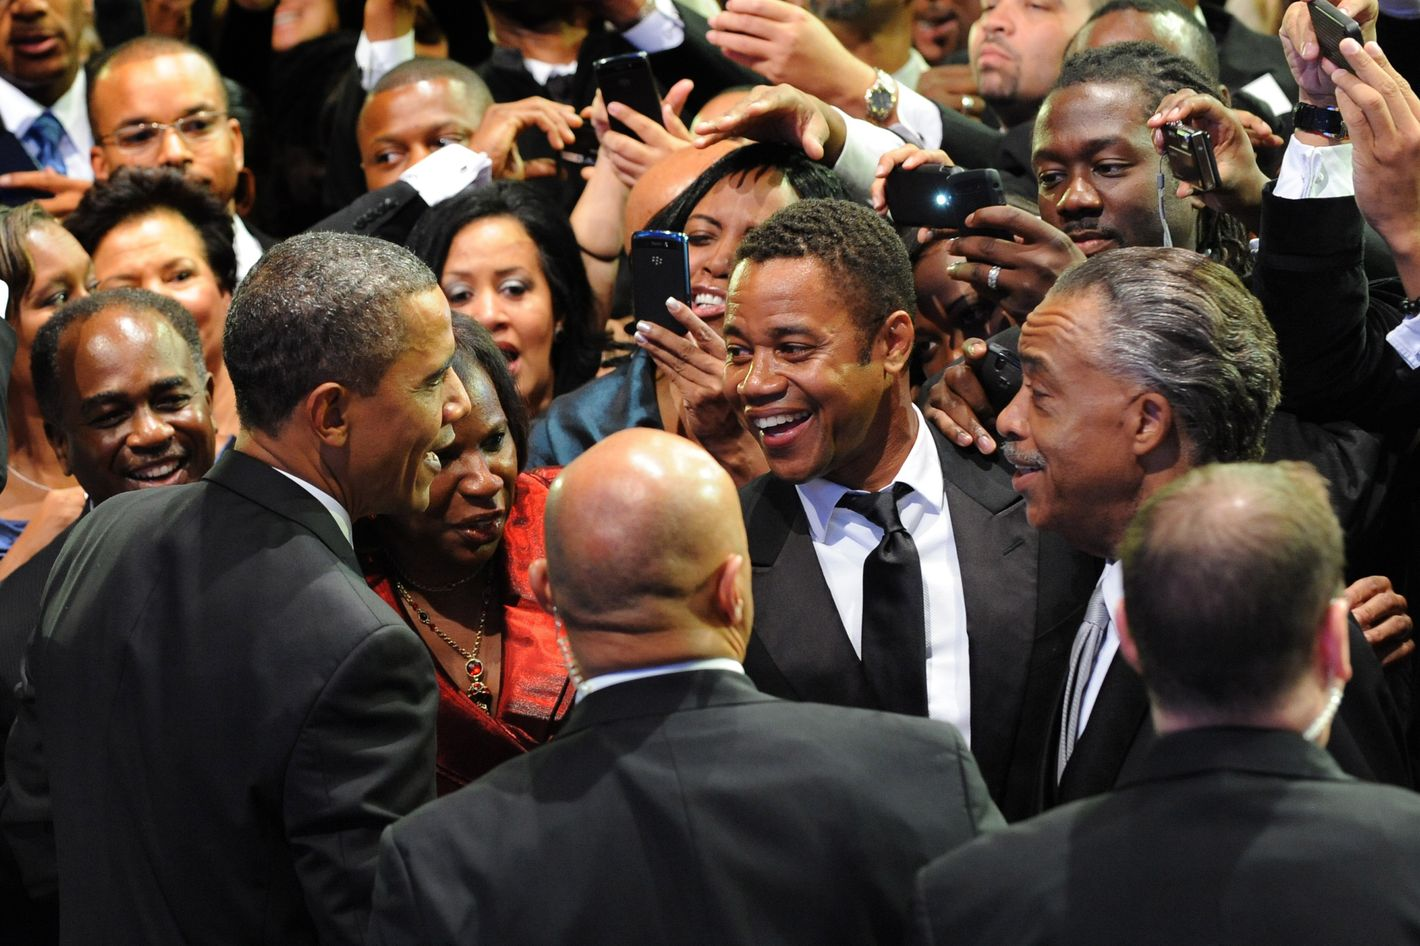 Actor Cuba Gooding Jr. (C) and Democratic Representative from New York Charles Rangel speak with US President Barack Obama as he greets wellwishers after addressing the Congressional Black Caucus Foundation Annual Phoenix Awards at the Washington Convention Center.on September 24, 2011.    AFP PHOTO/Nicholas KAMM (Photo credit should read NICHOLAS KAMM/AFP/Getty Images)